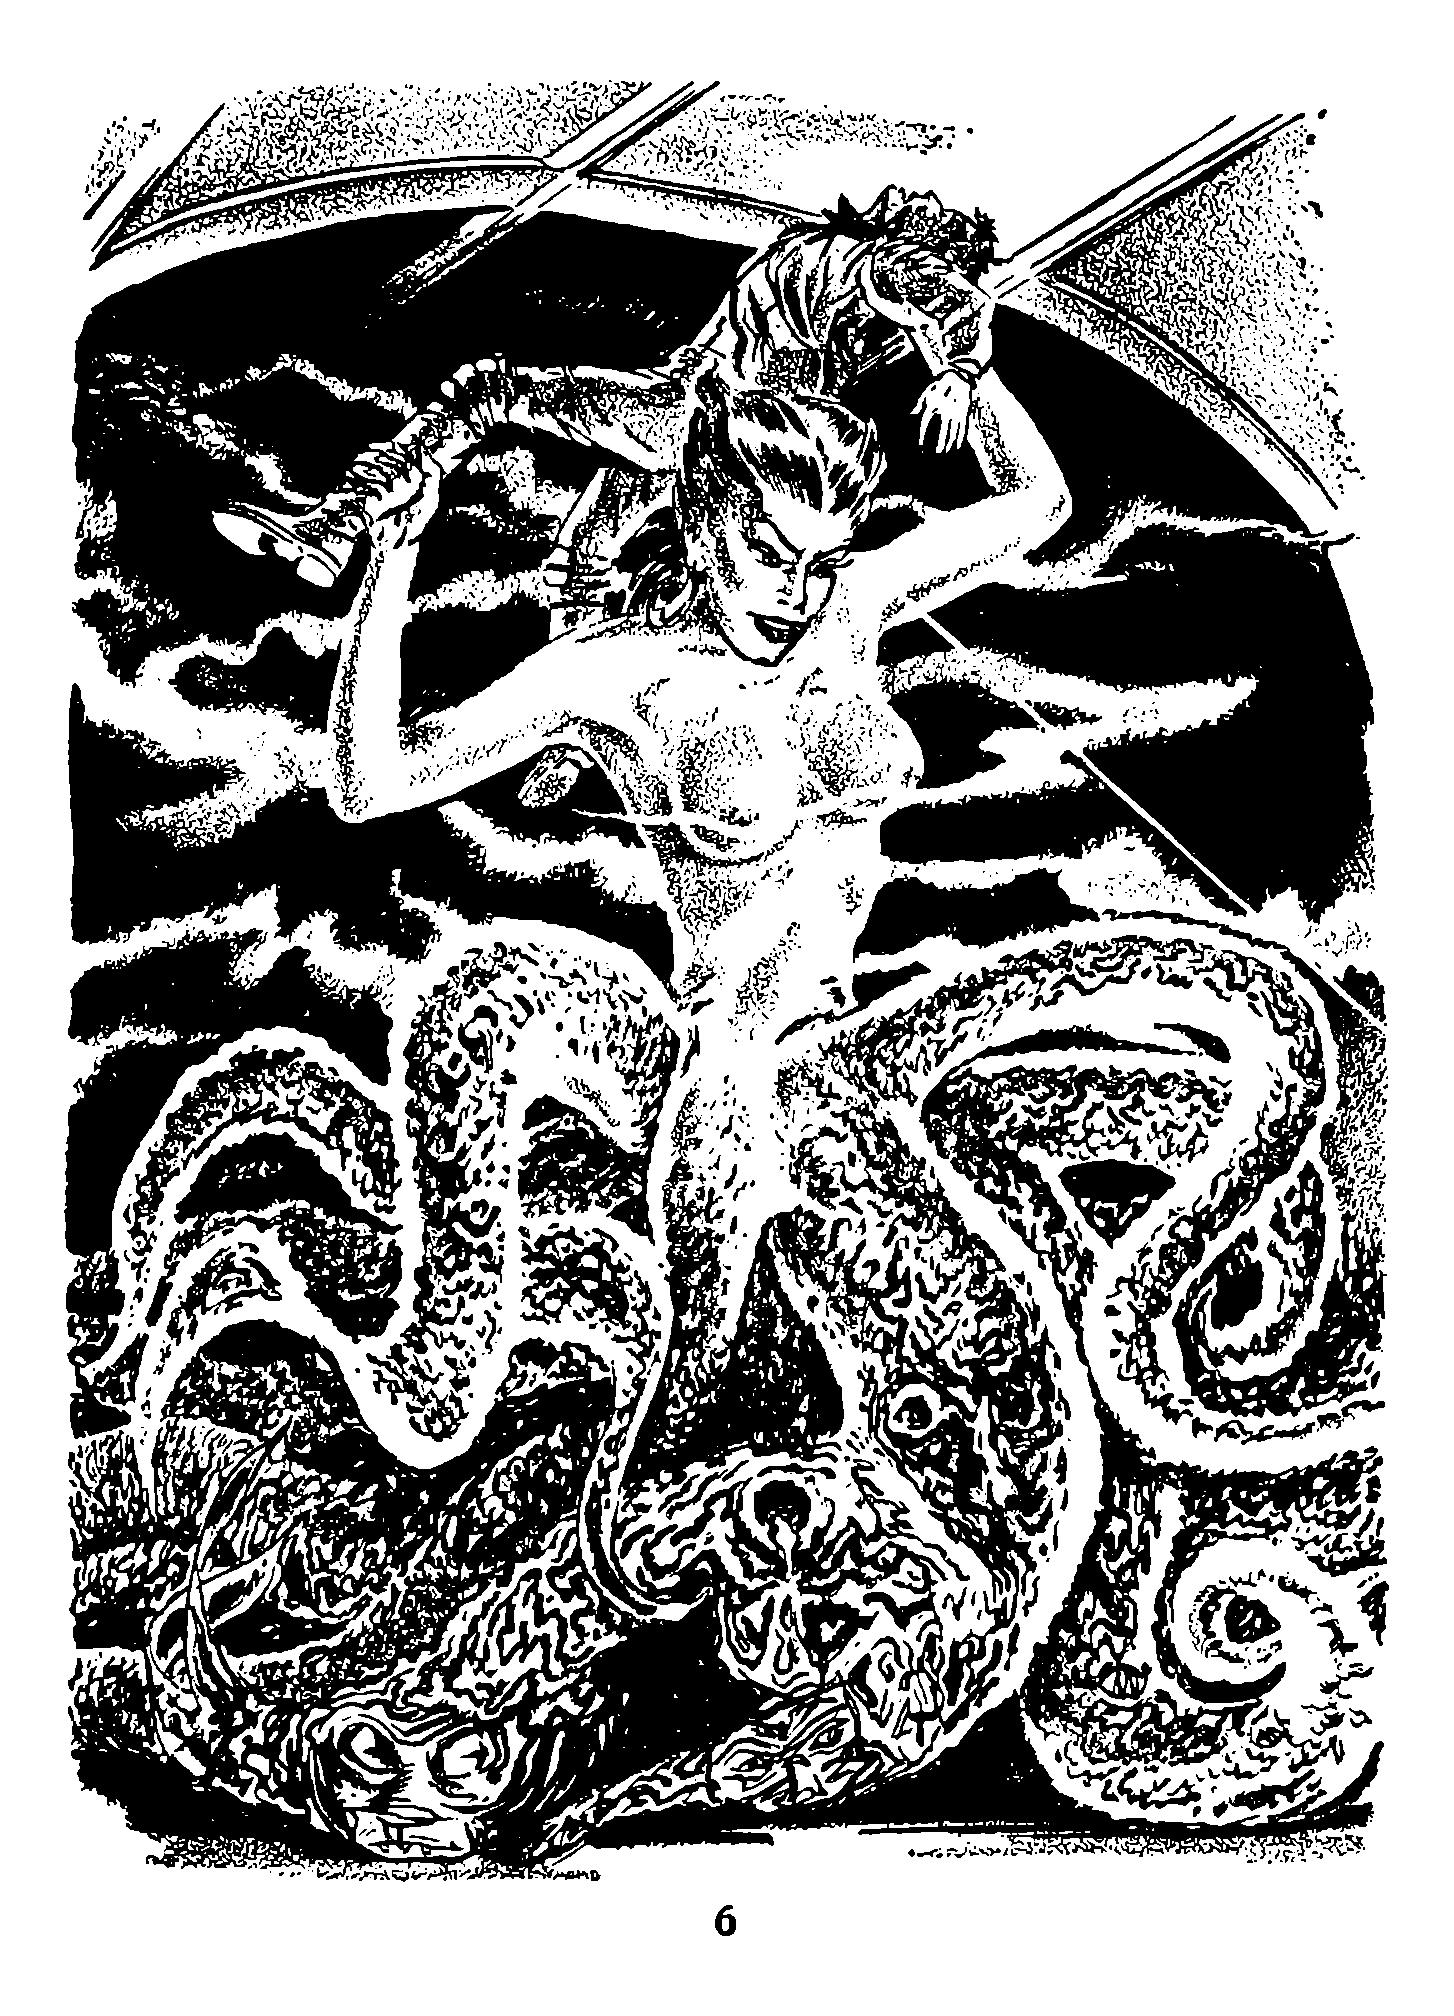 A giant space octopus-woman thrashes a hapless crewman.